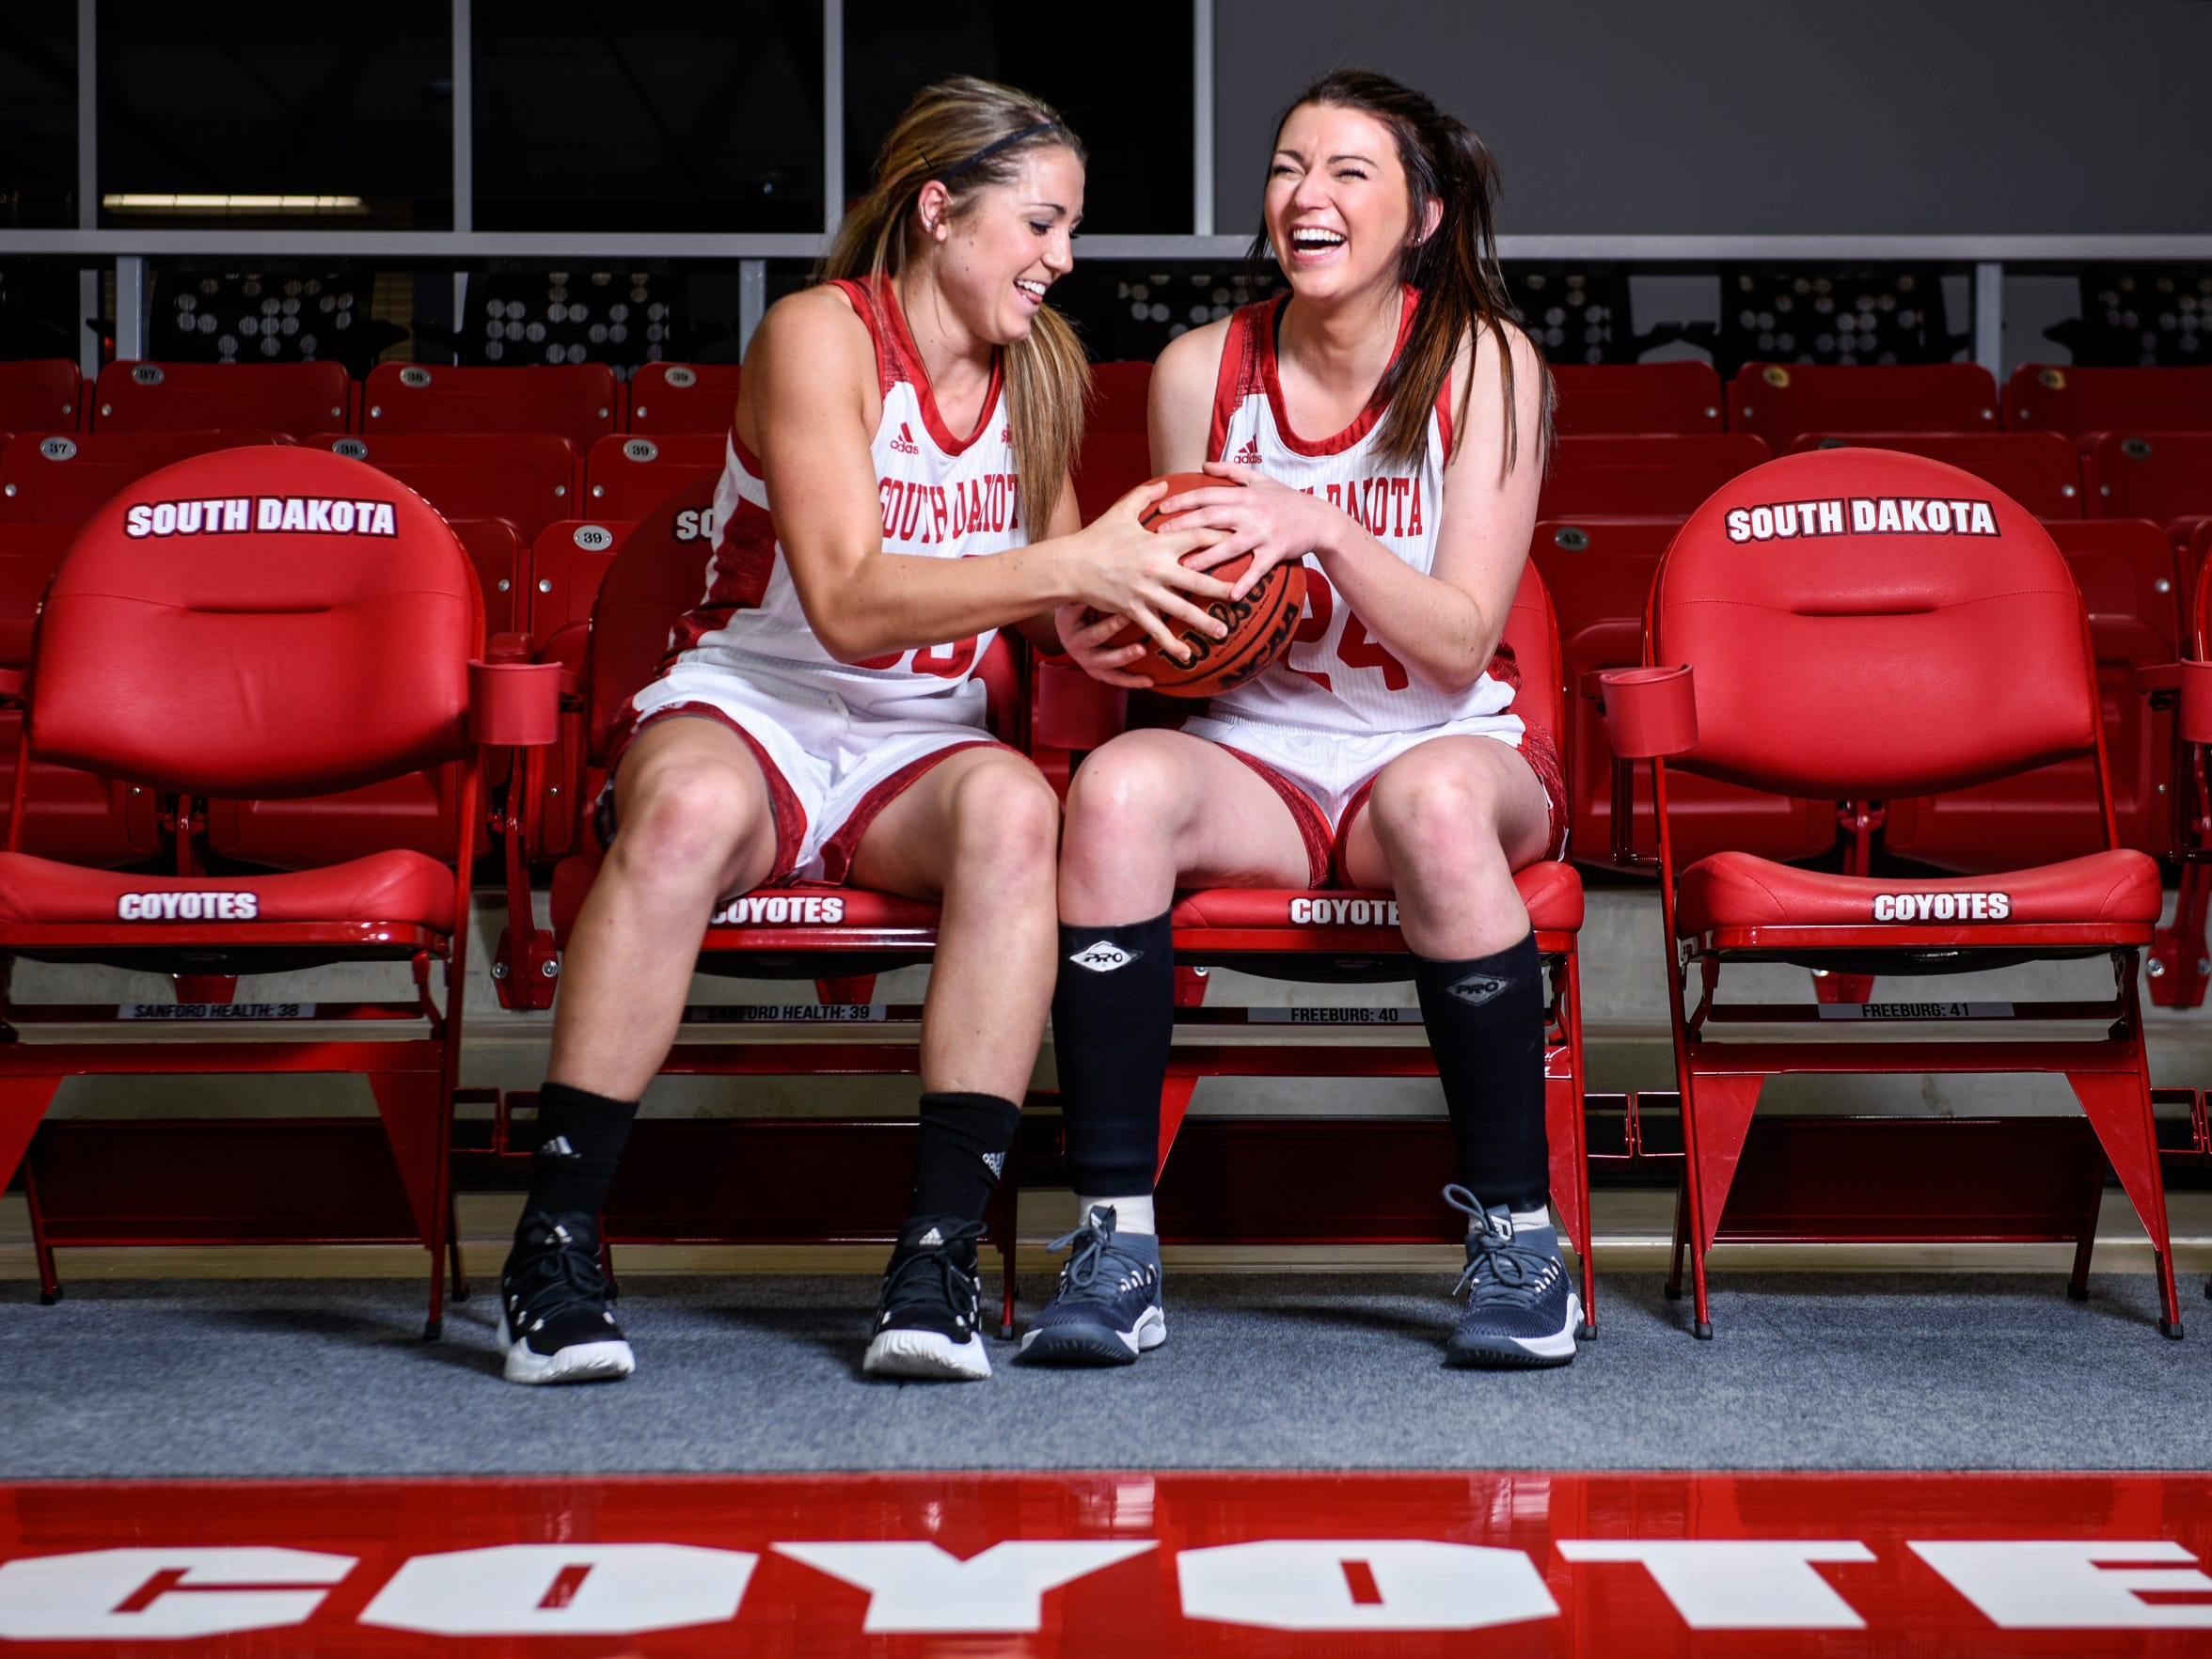 Caitlin Duffy (left) and her sister Ciara (right) pose